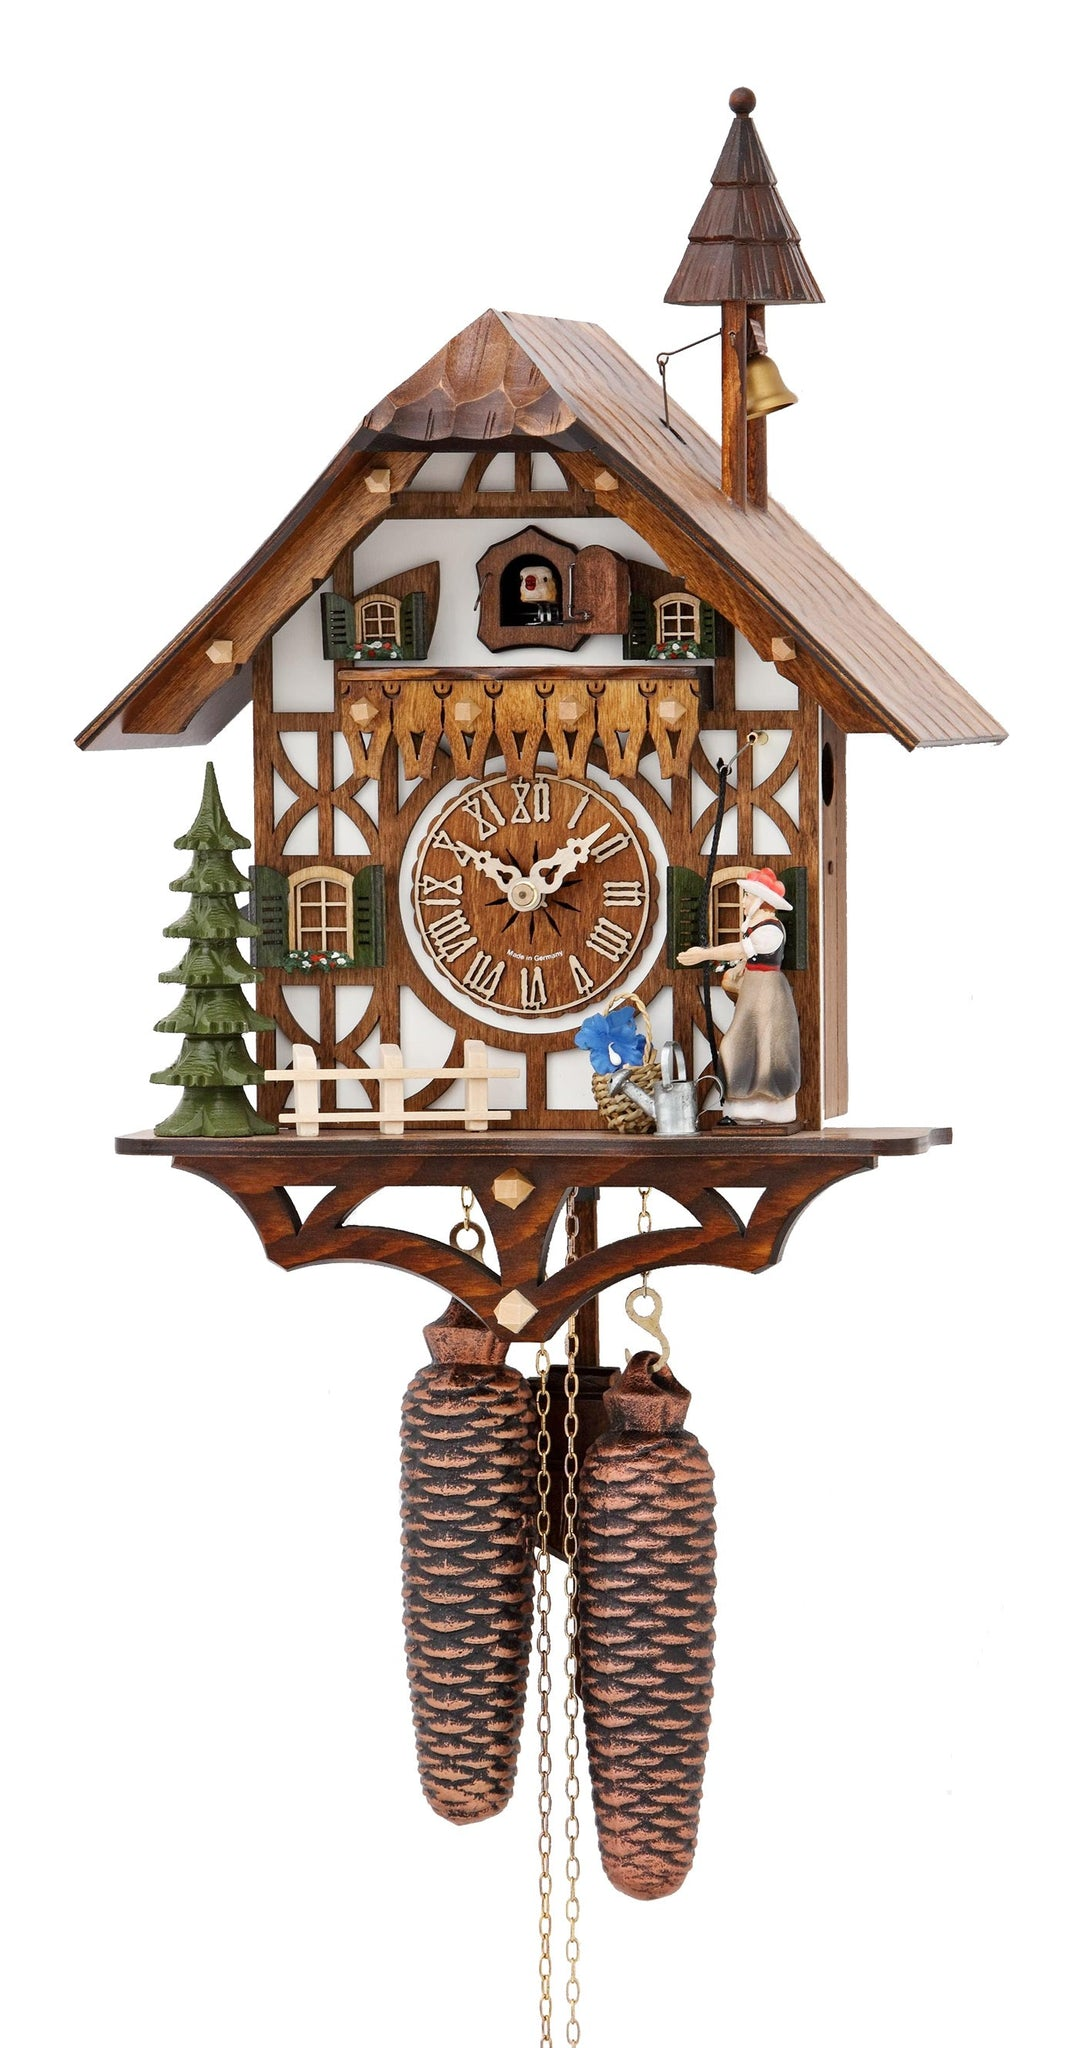 Cuckoo Clock Black Forest House 8-Day Movement - Cuckoo Clock Meister